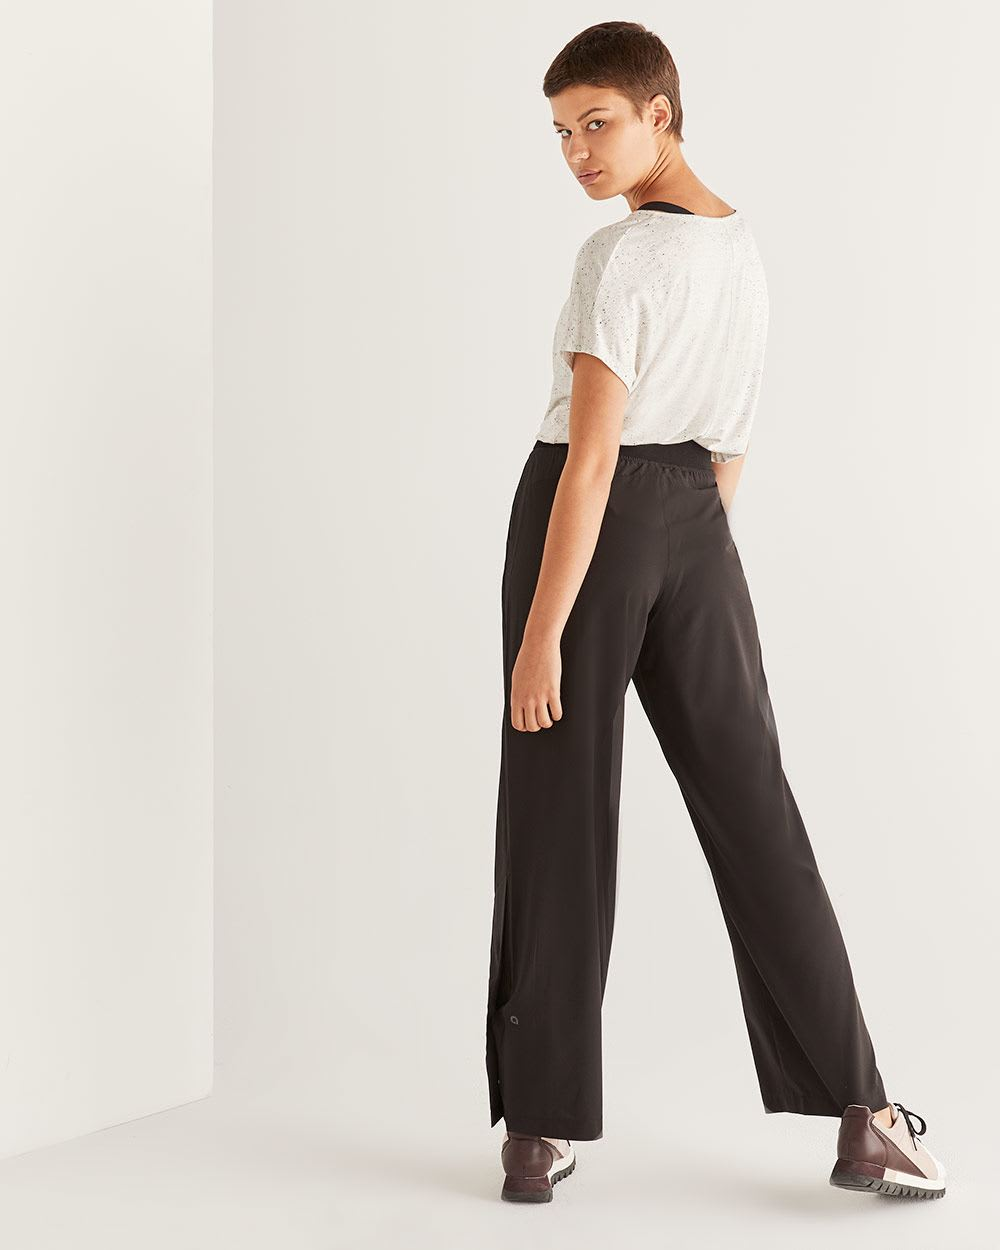 Hyba Black Wide Leg Pants with Snap Buttons